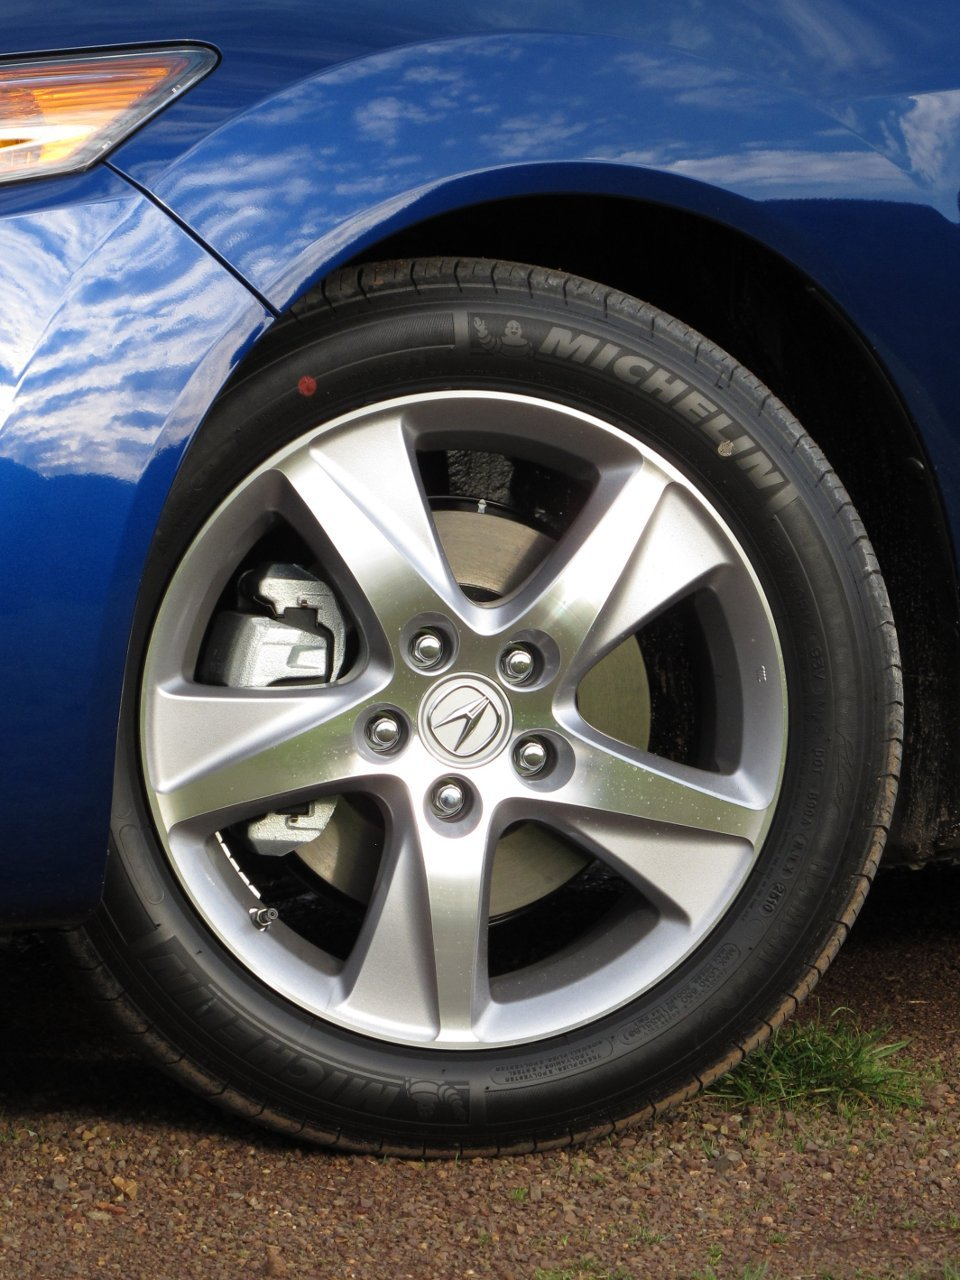 Acura TSX Sport Wagon wheels #1